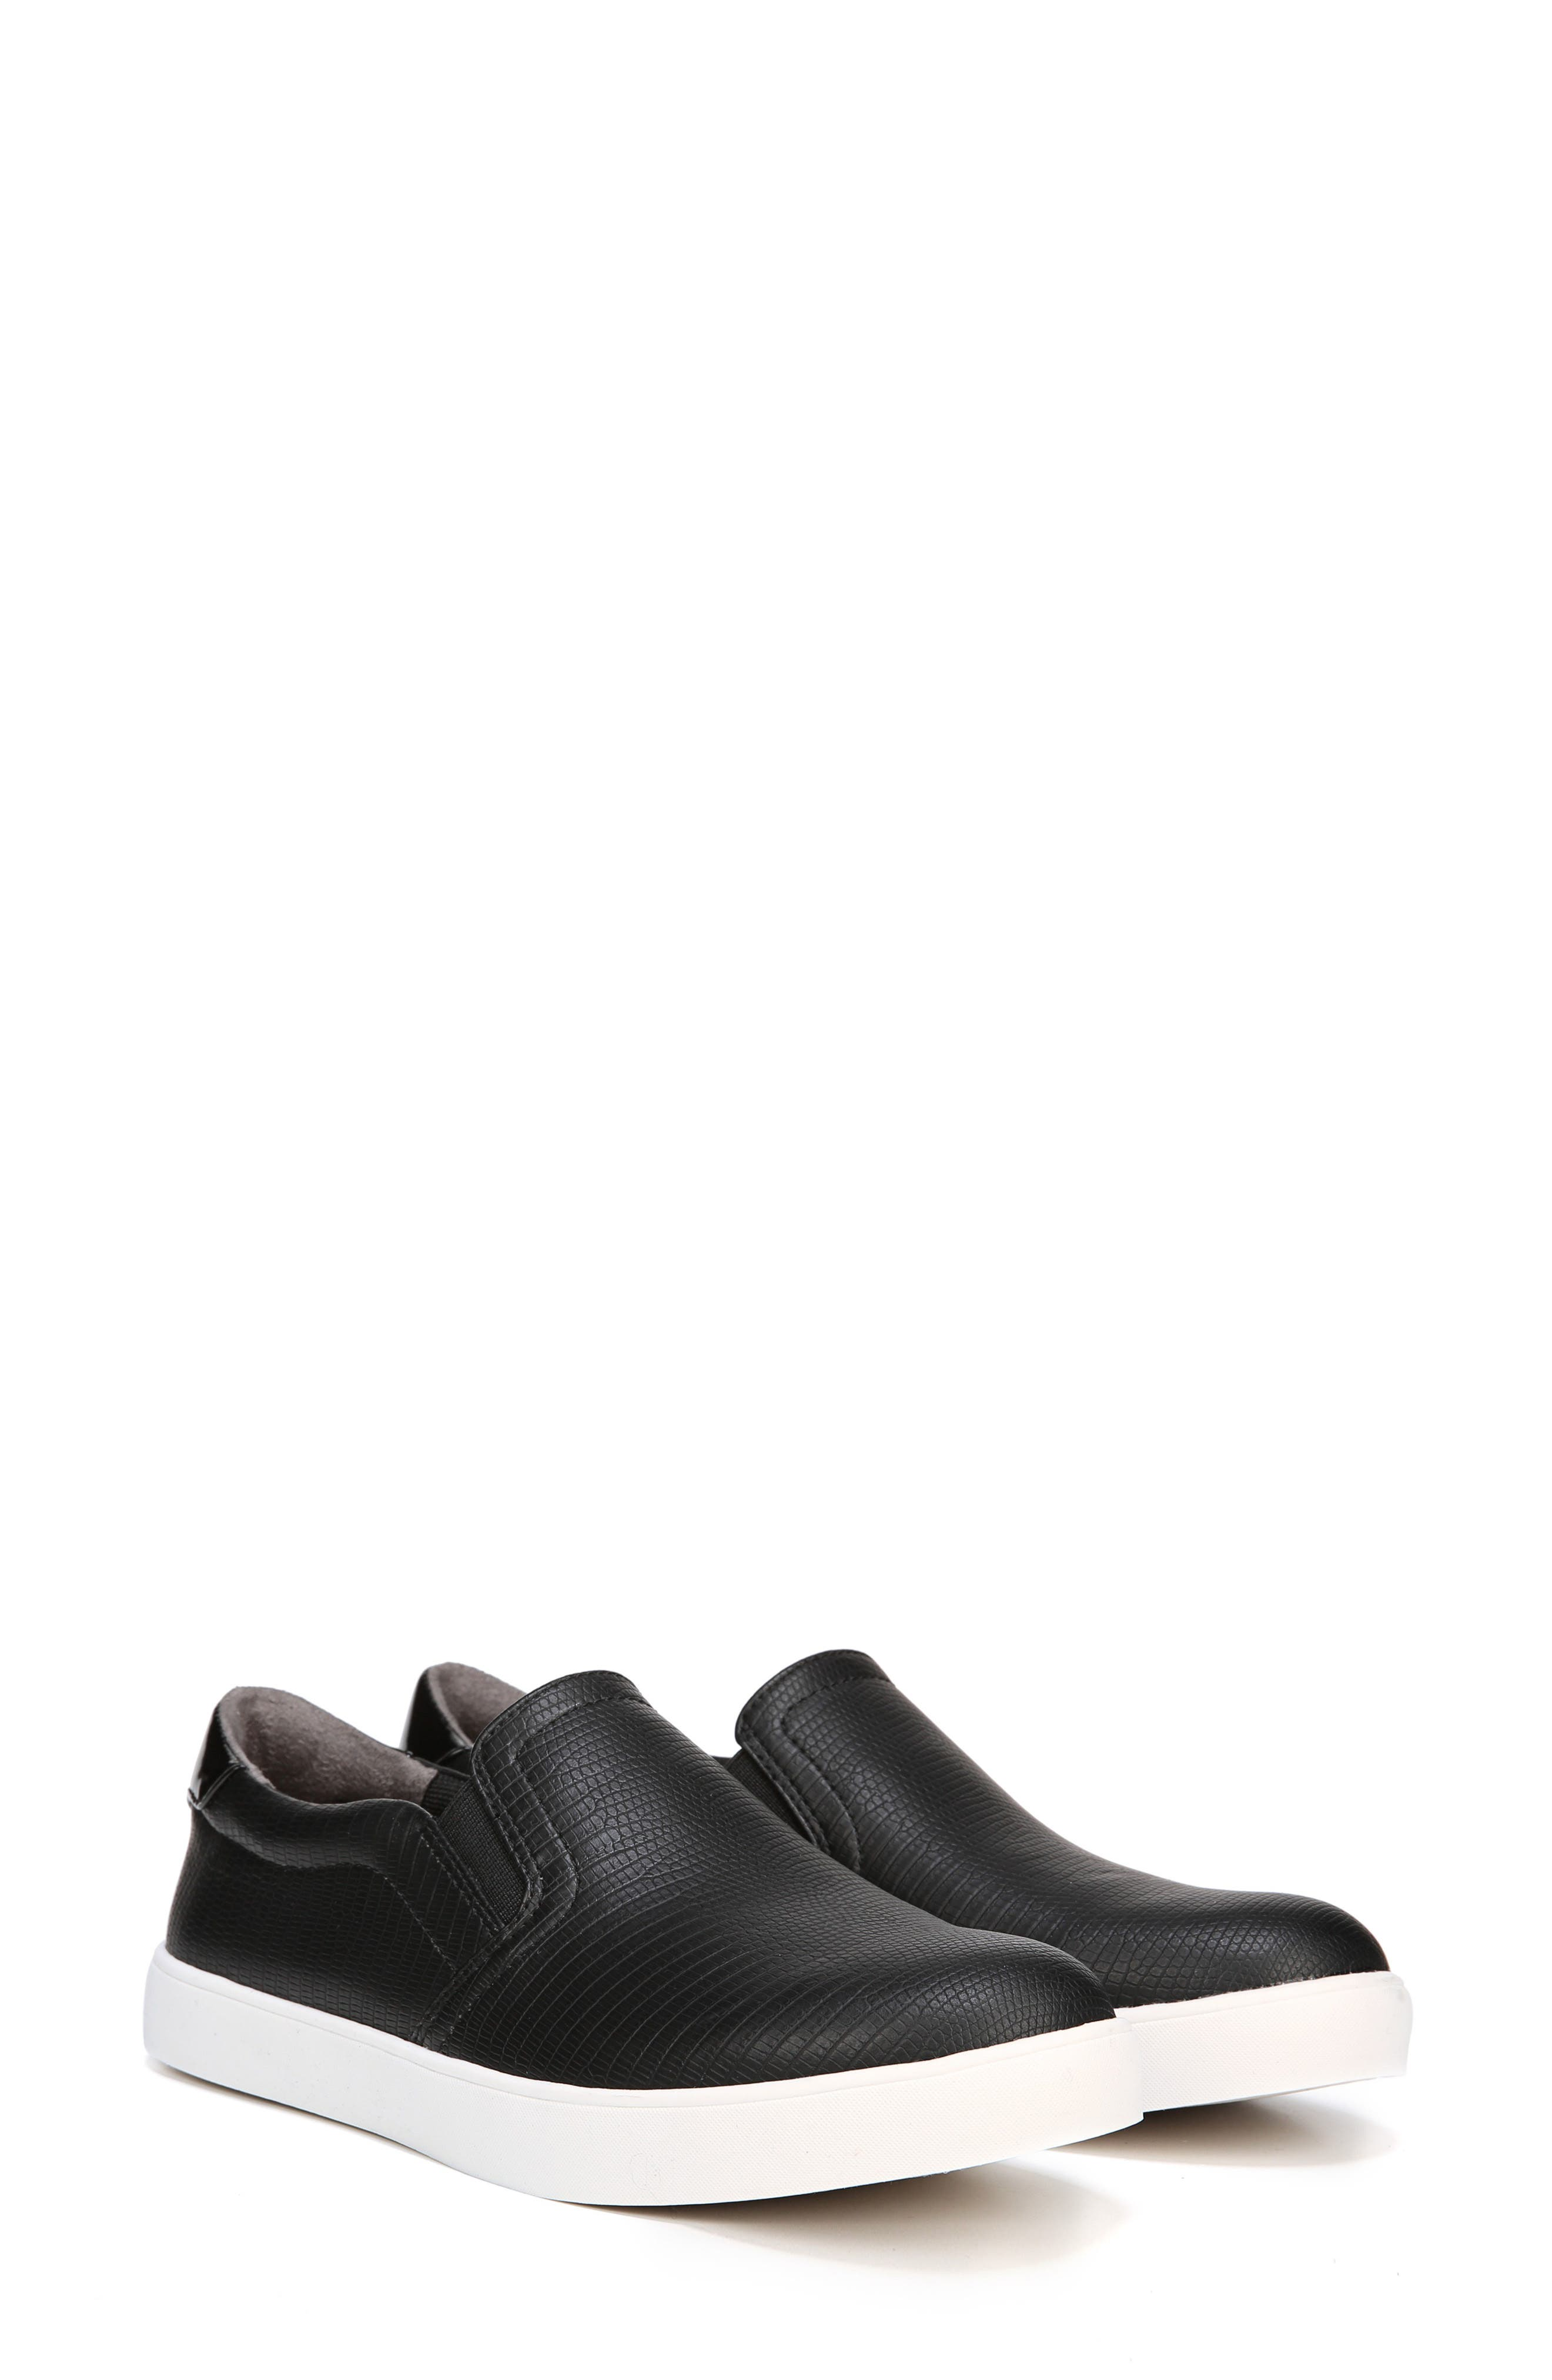 Madison Slip-On Sneaker,                             Alternate thumbnail 7, color,                             BLACK FAUX LEATHER